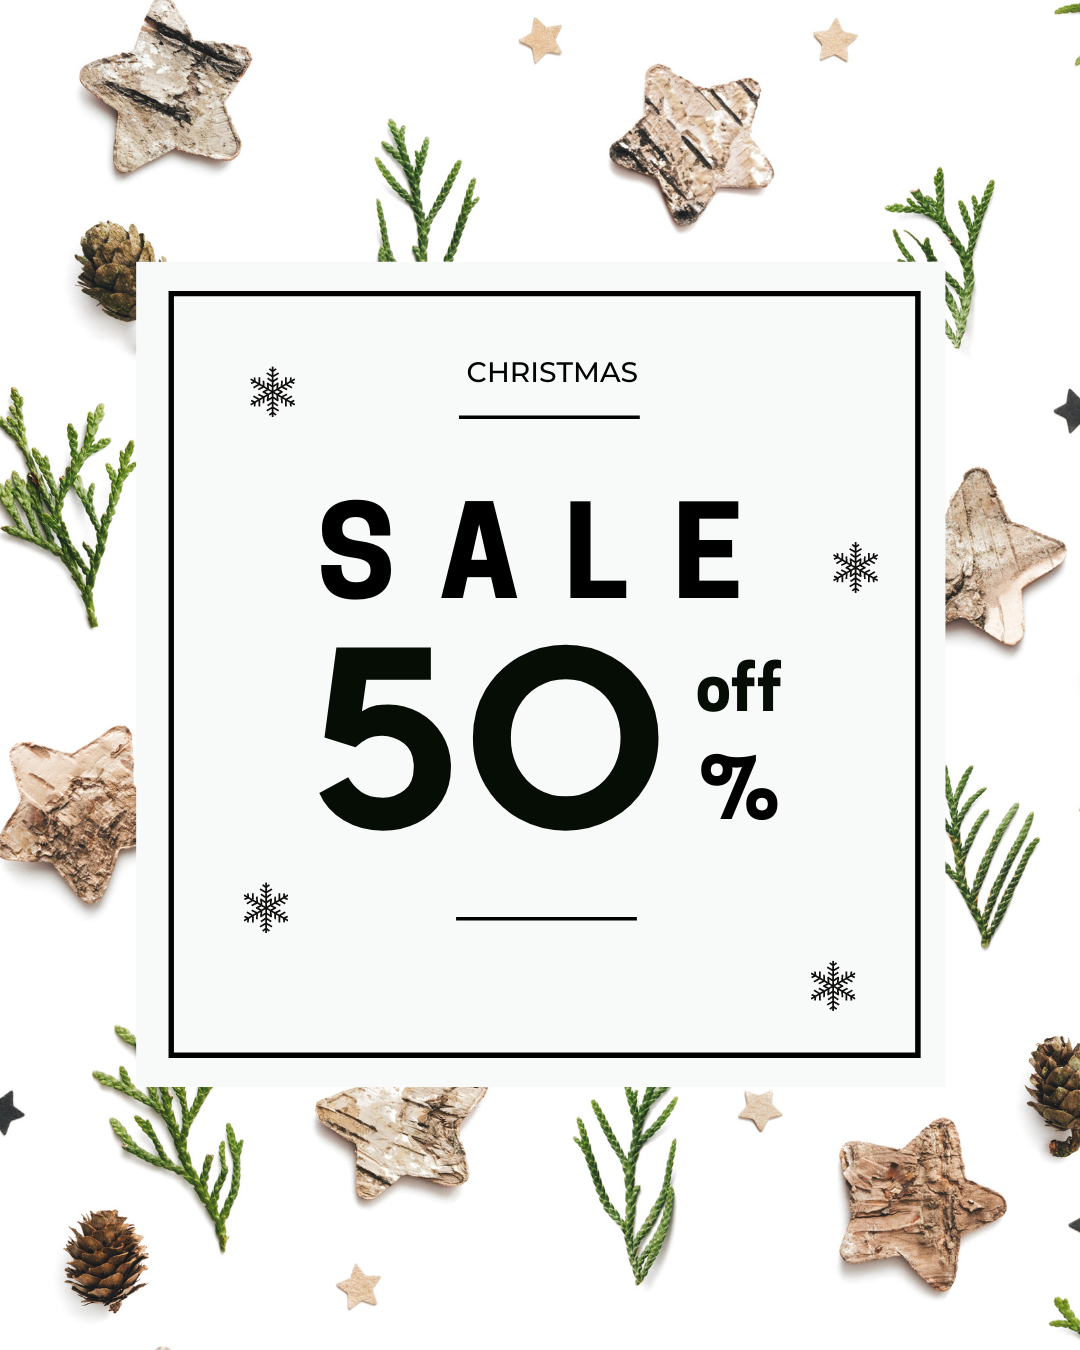 Christmas Sale Boxing Day Discount Instagram Post (1)